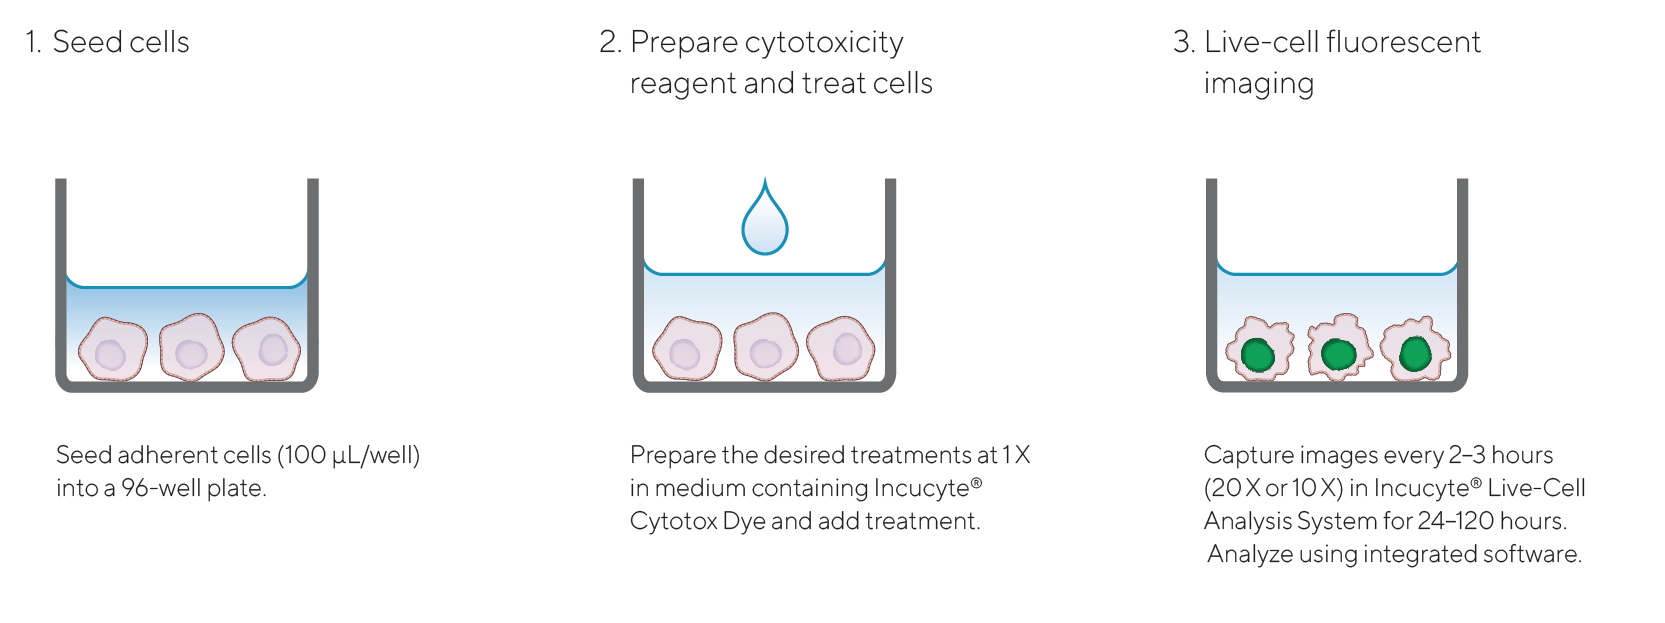 Incucyte® Cytotox Dye Quick Guide